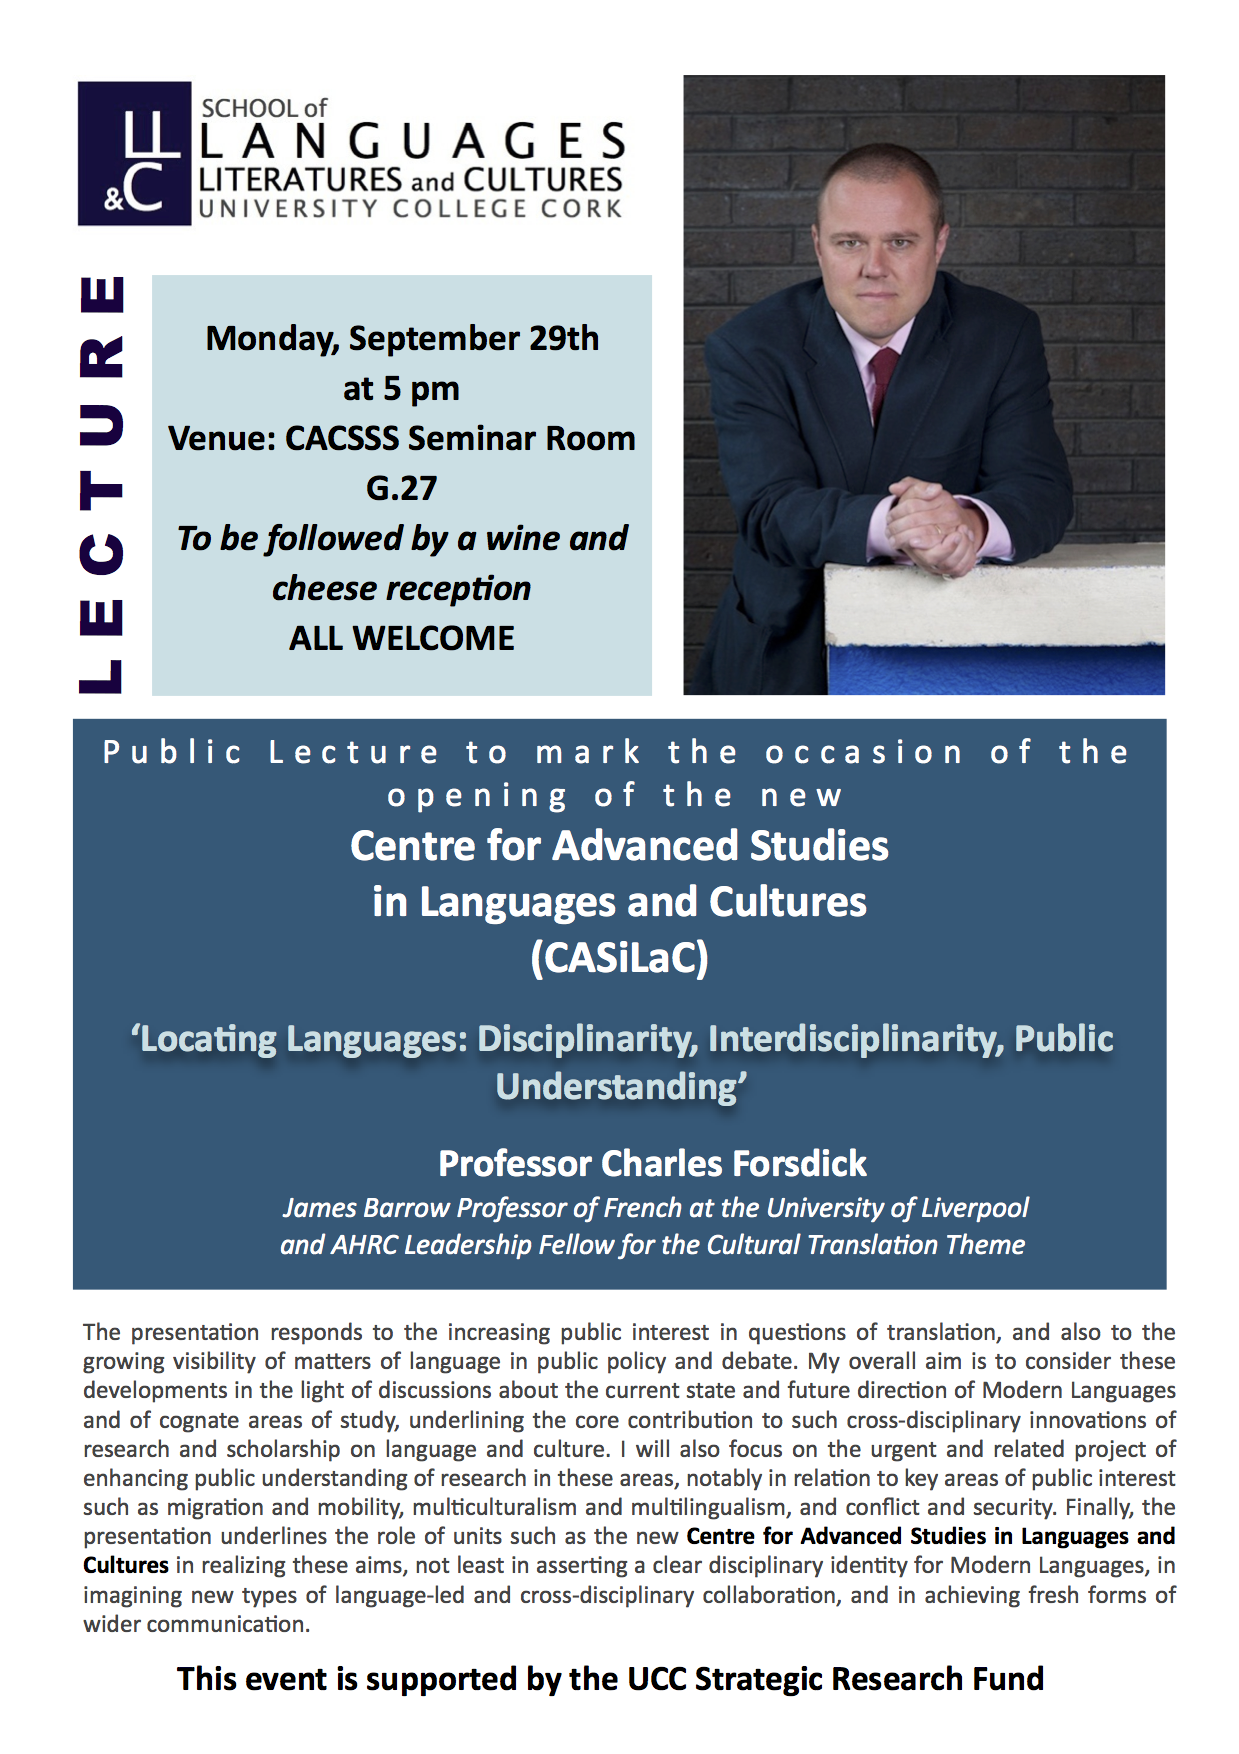 Public Lecture by Professor Charles Forsdick - 5 p.m. Monday 29th September 2014